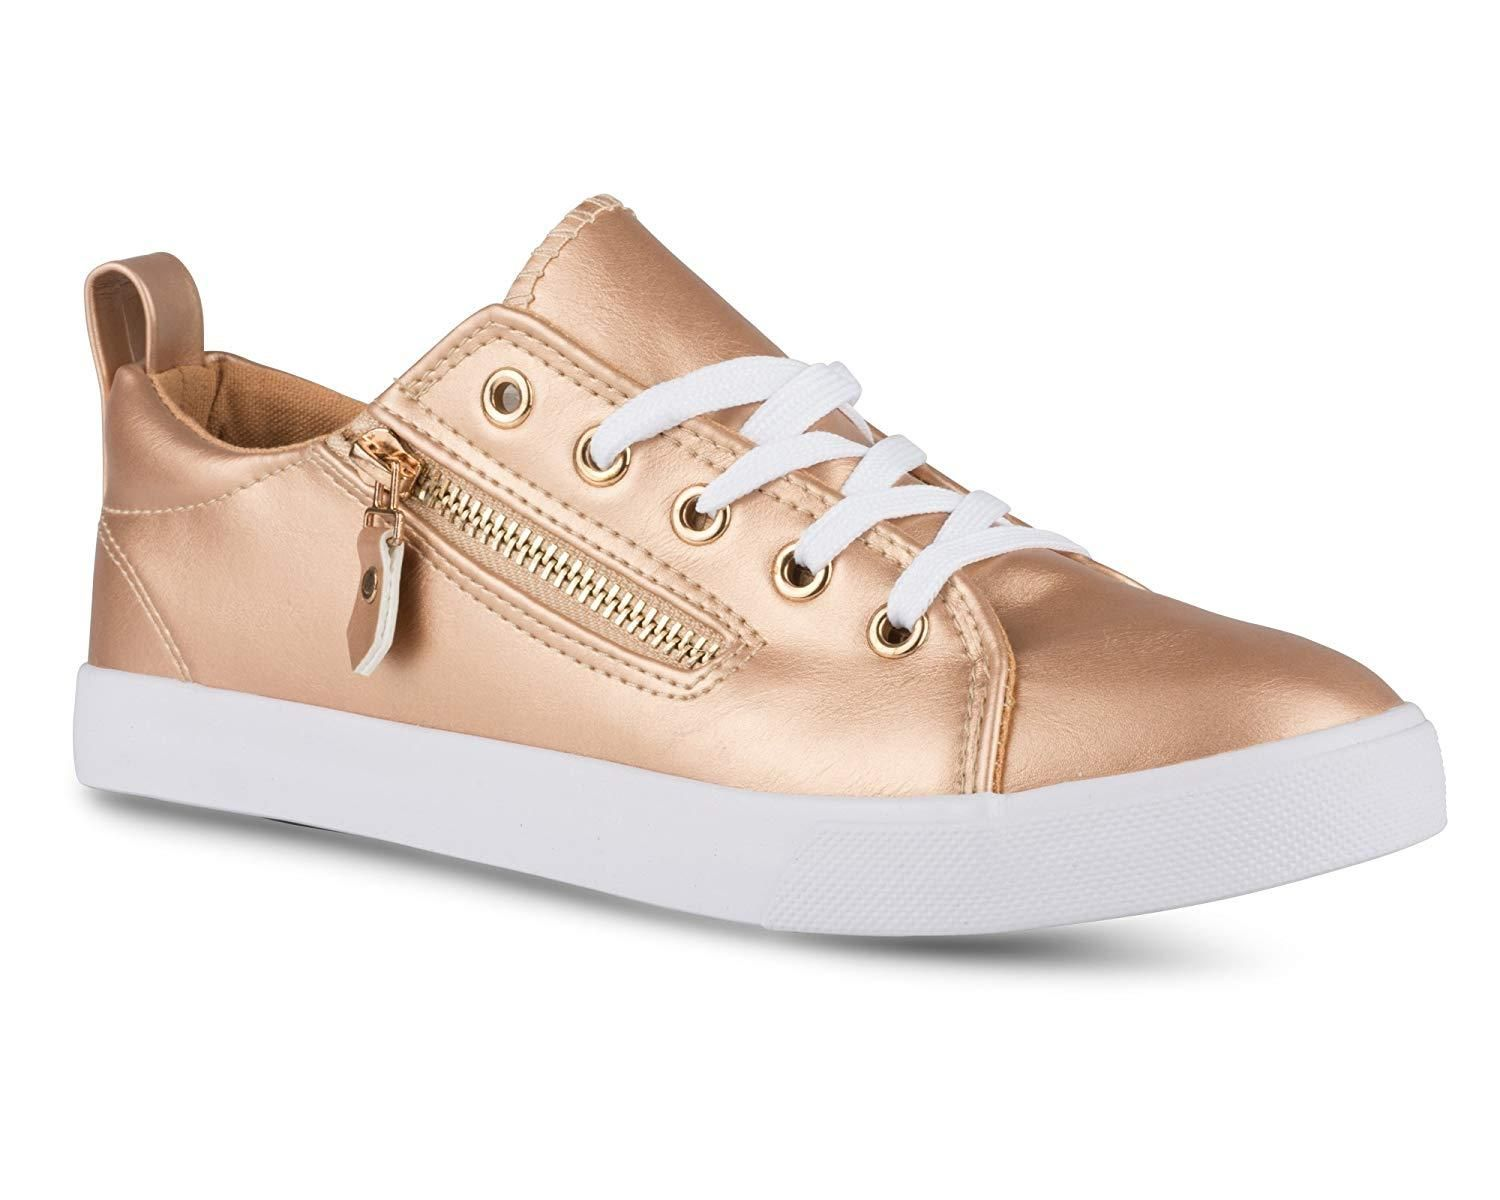 Twisted Womens Alley Faux Leather Fashion Sneaker with Decorative Zipper